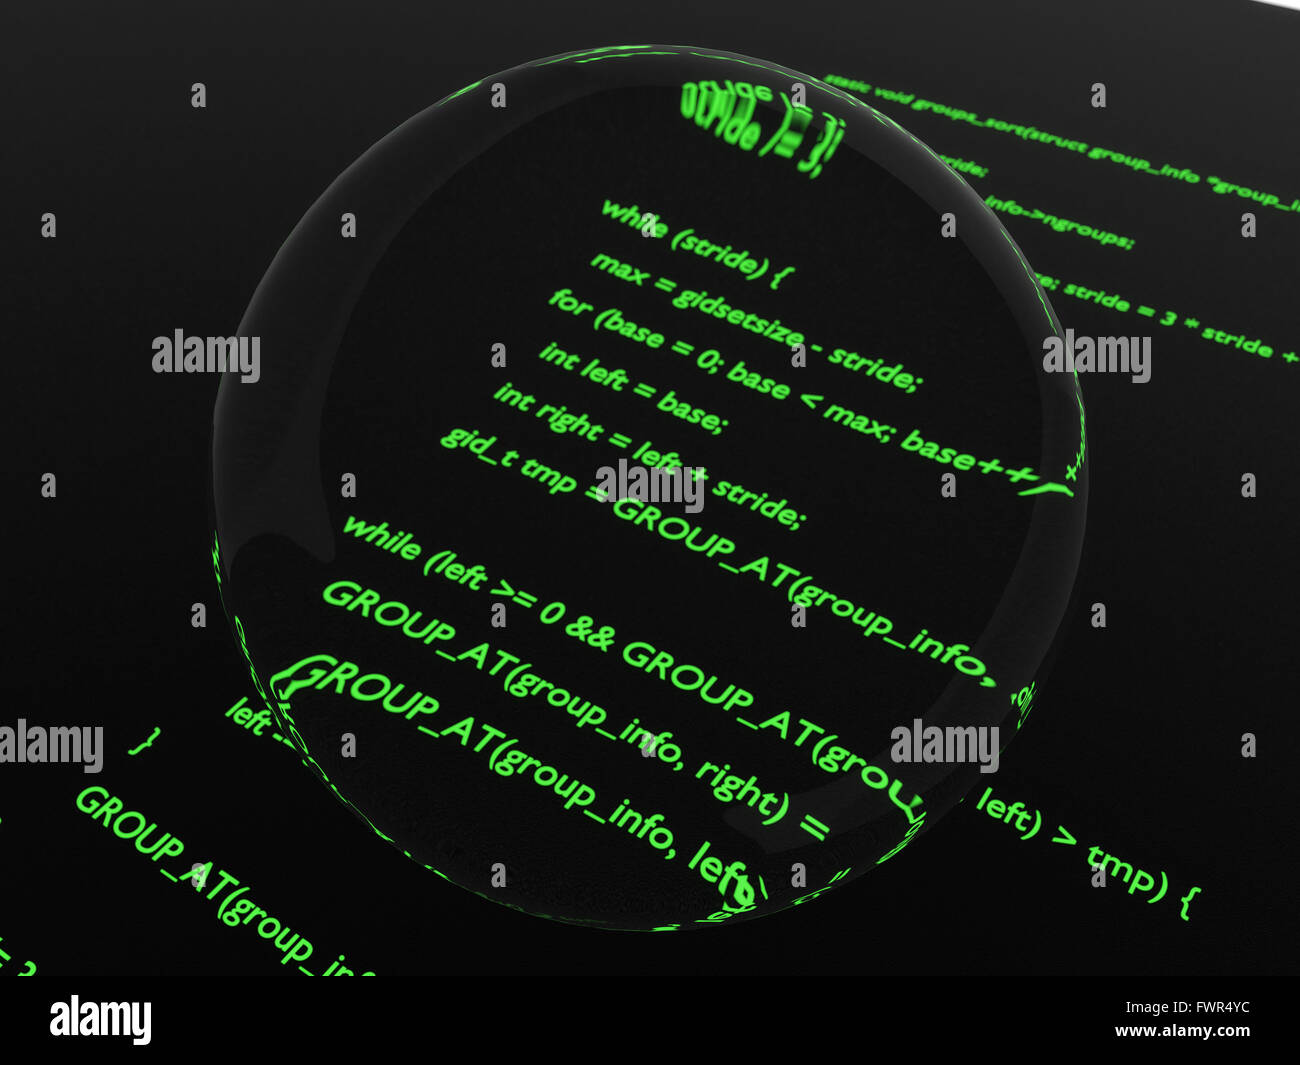 Green glowing computer code magnified in center by glass disk. - Stock Image